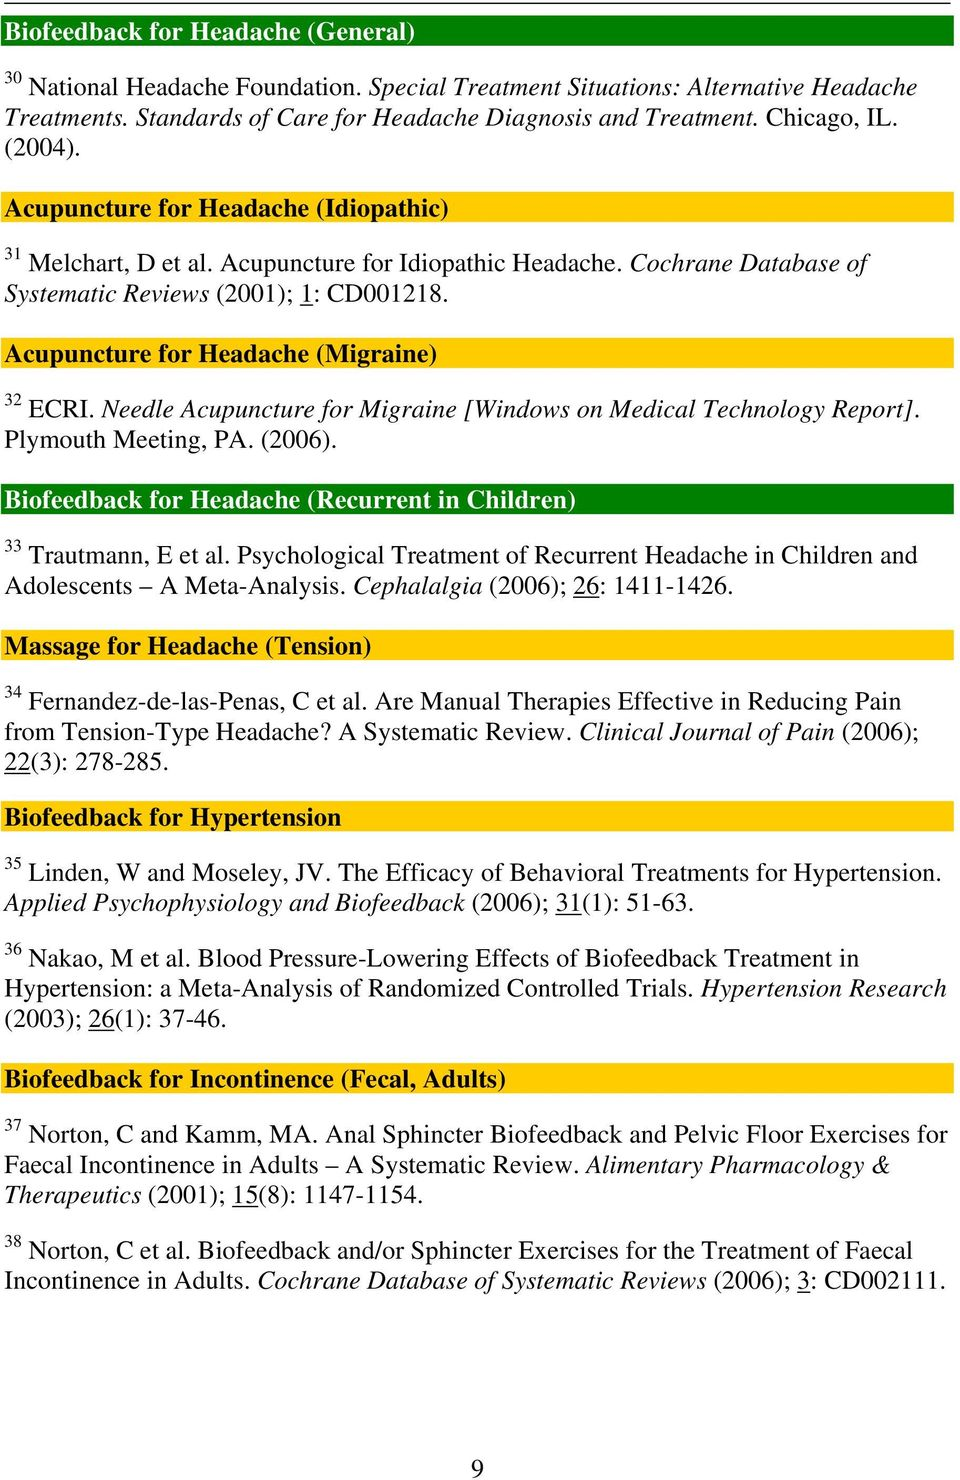 Acupuncture for Headache (Migraine) 32 ECRI. Needle Acupuncture for Migraine [Windows on Medical Technology Report]. Plymouth Meeting, PA. (2006).